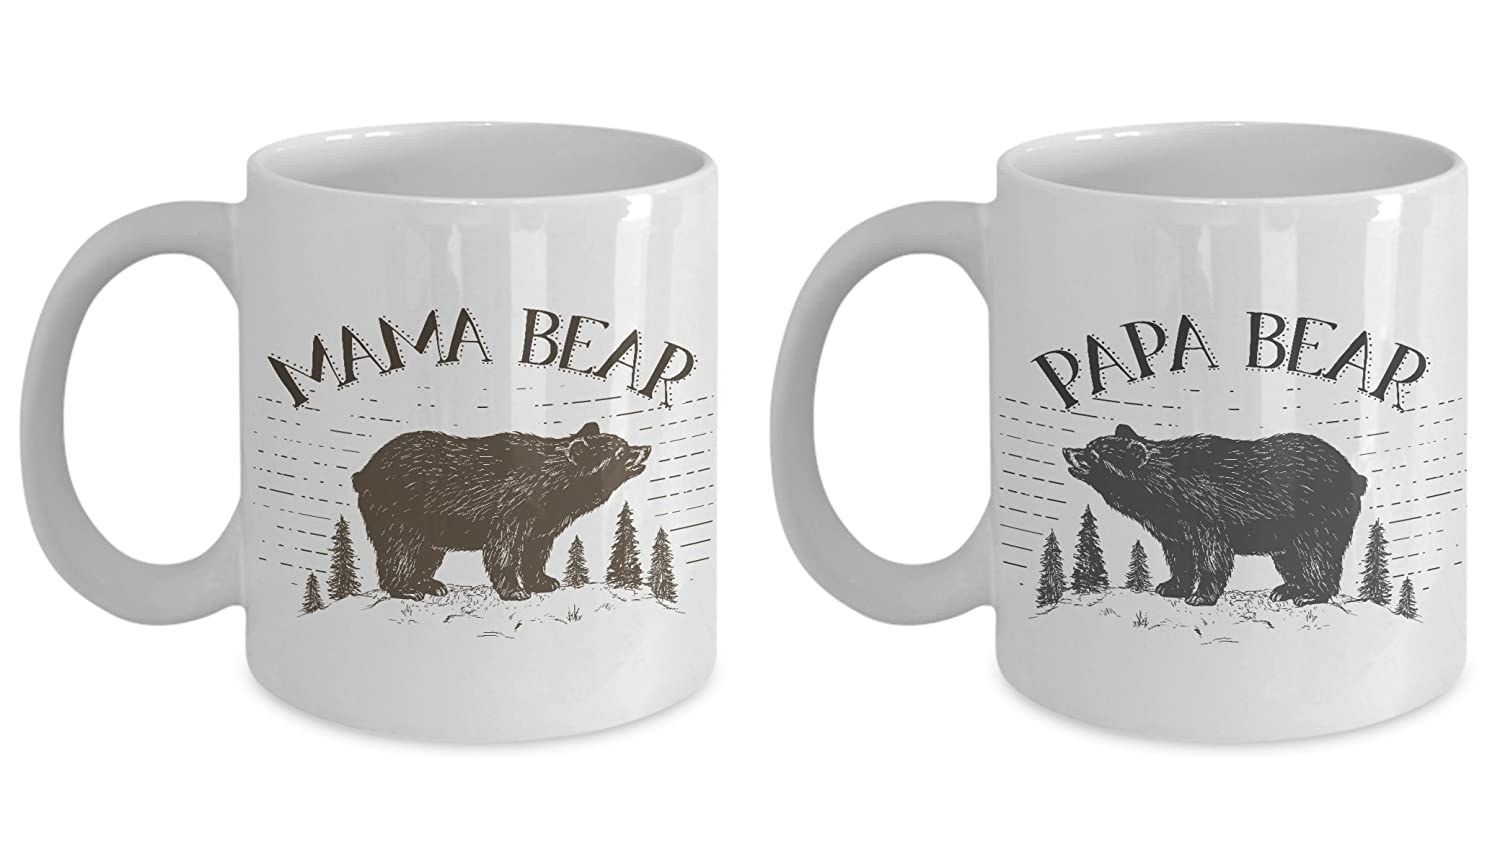 Papa Bear and Mama Bearマグカップギフトセット – UniqueギフトIdea for Mom and Dad。Make Them Proud On Their誕生日、クリスマス、父の日。母の日。 11oz B071WP8DH9  ホワイト 11oz